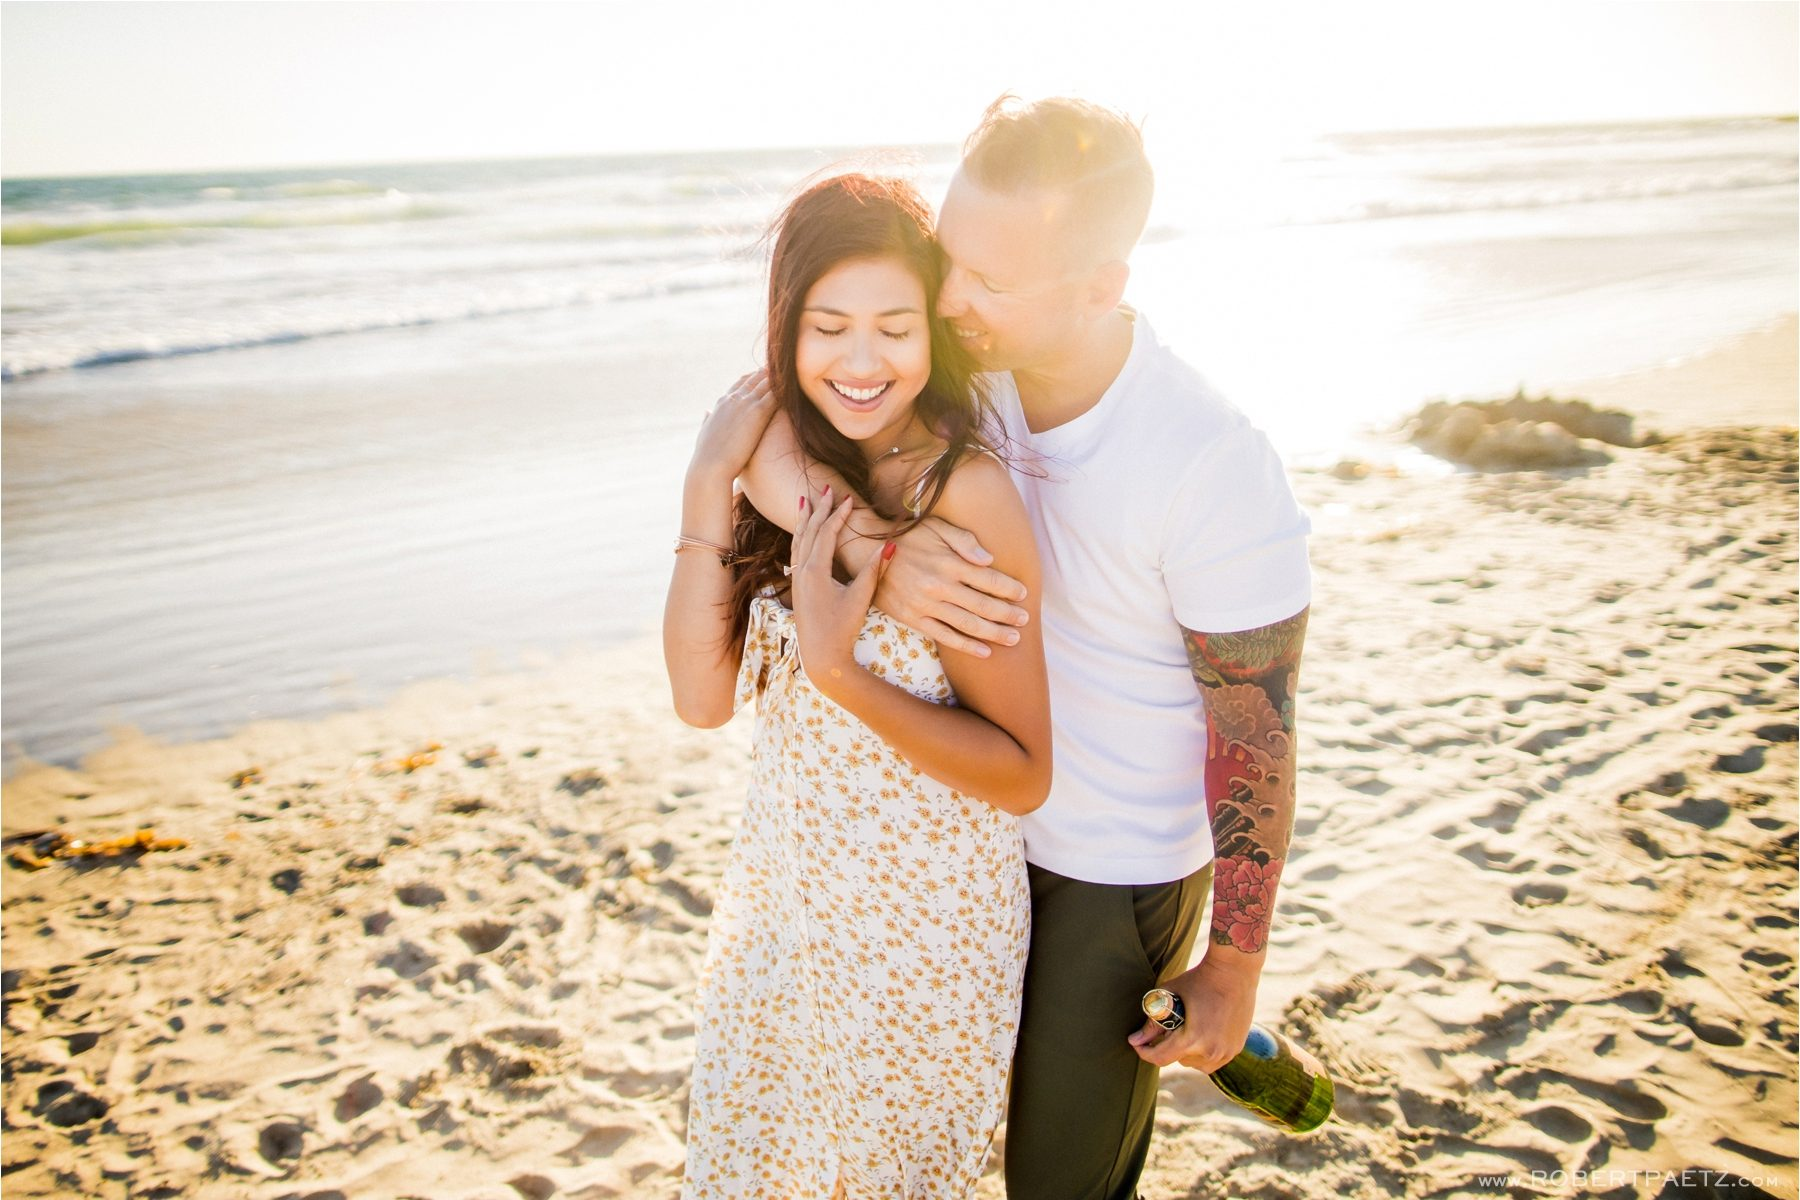 A Newport Beach, Orange County engagement photography session by the destination wedding photographer Robert Paetz.